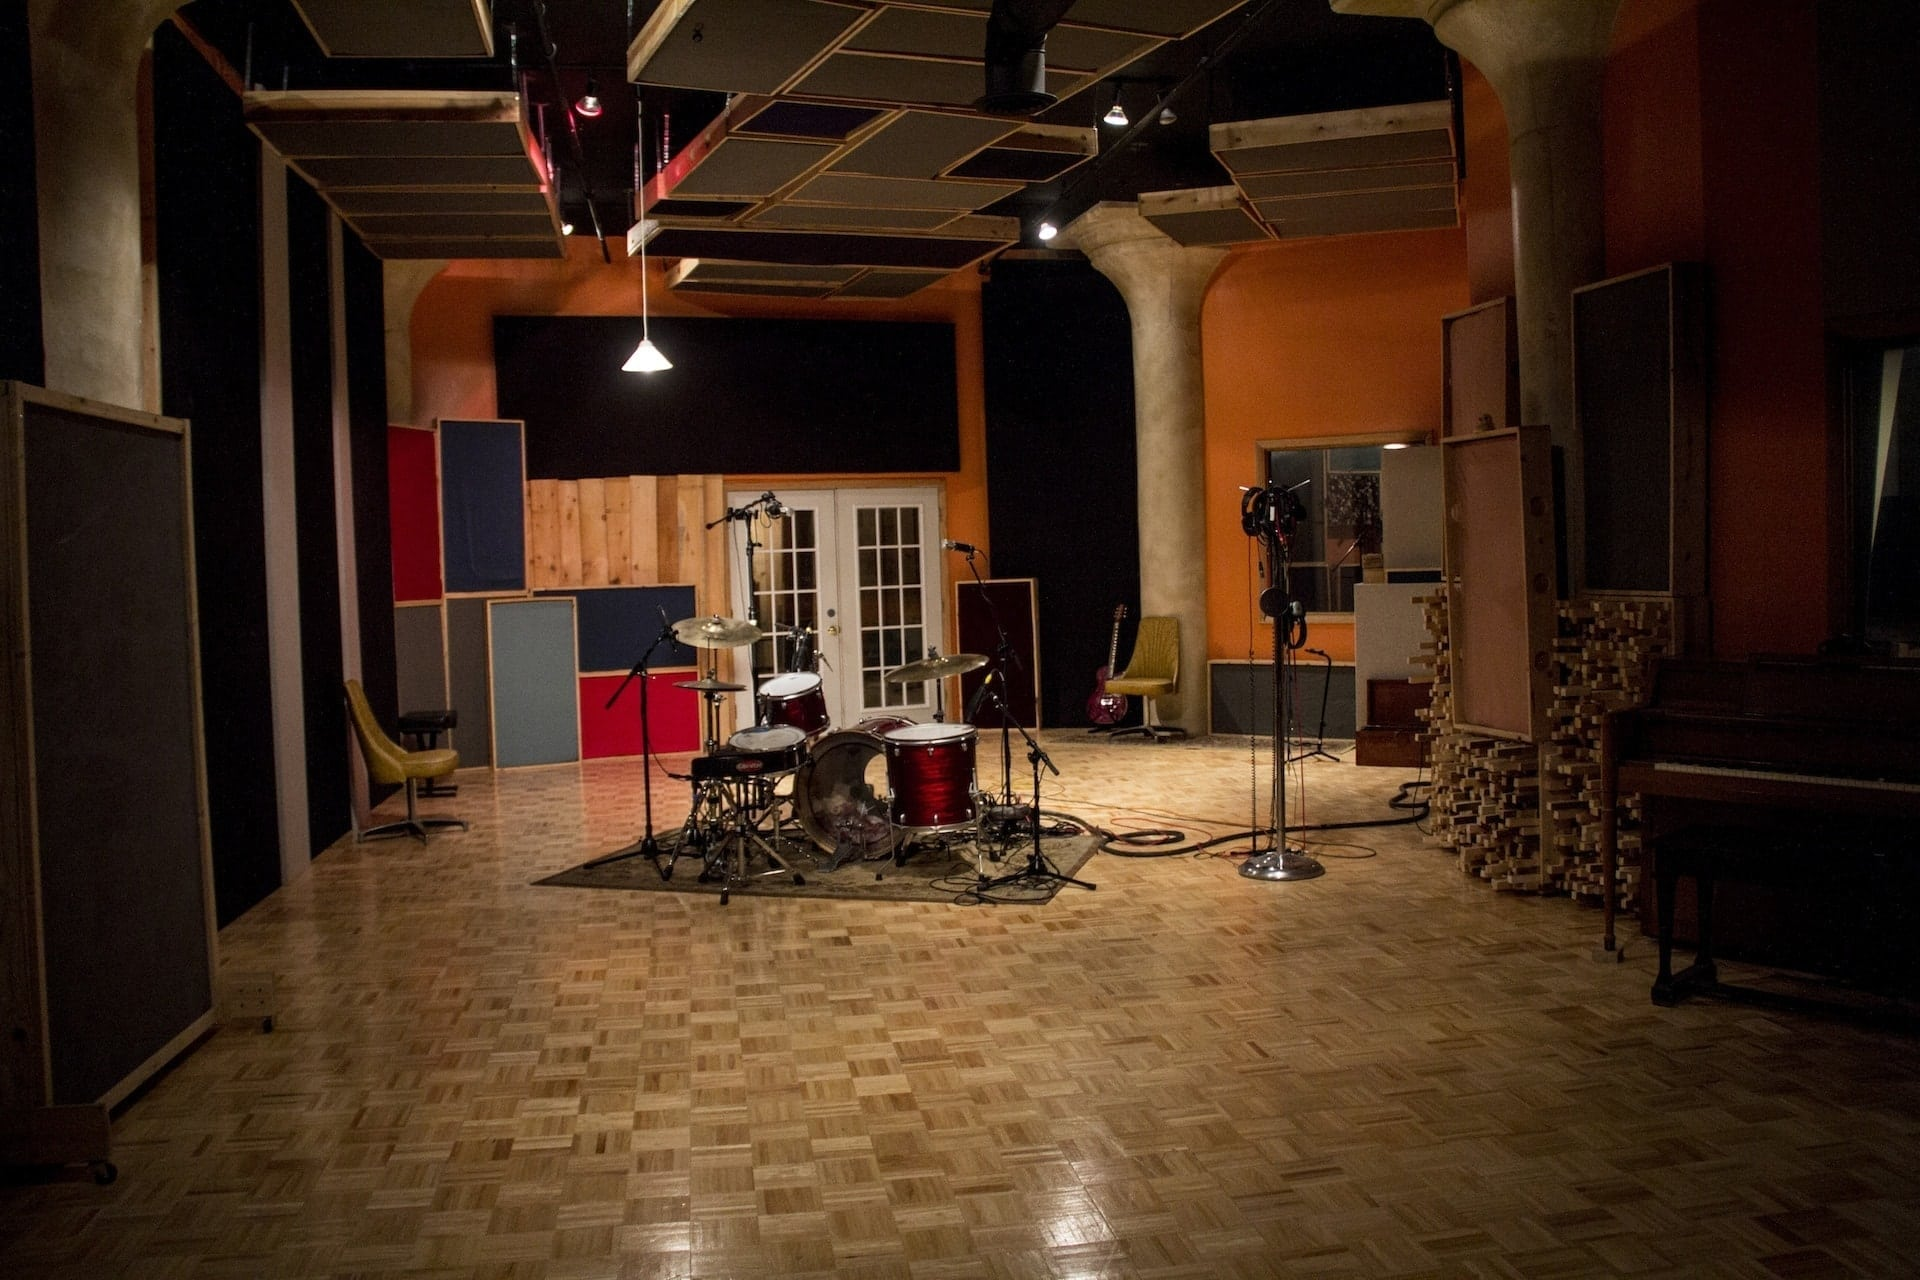 Studio Studios Bad Racket Cleveland Recording Studios And Video Production